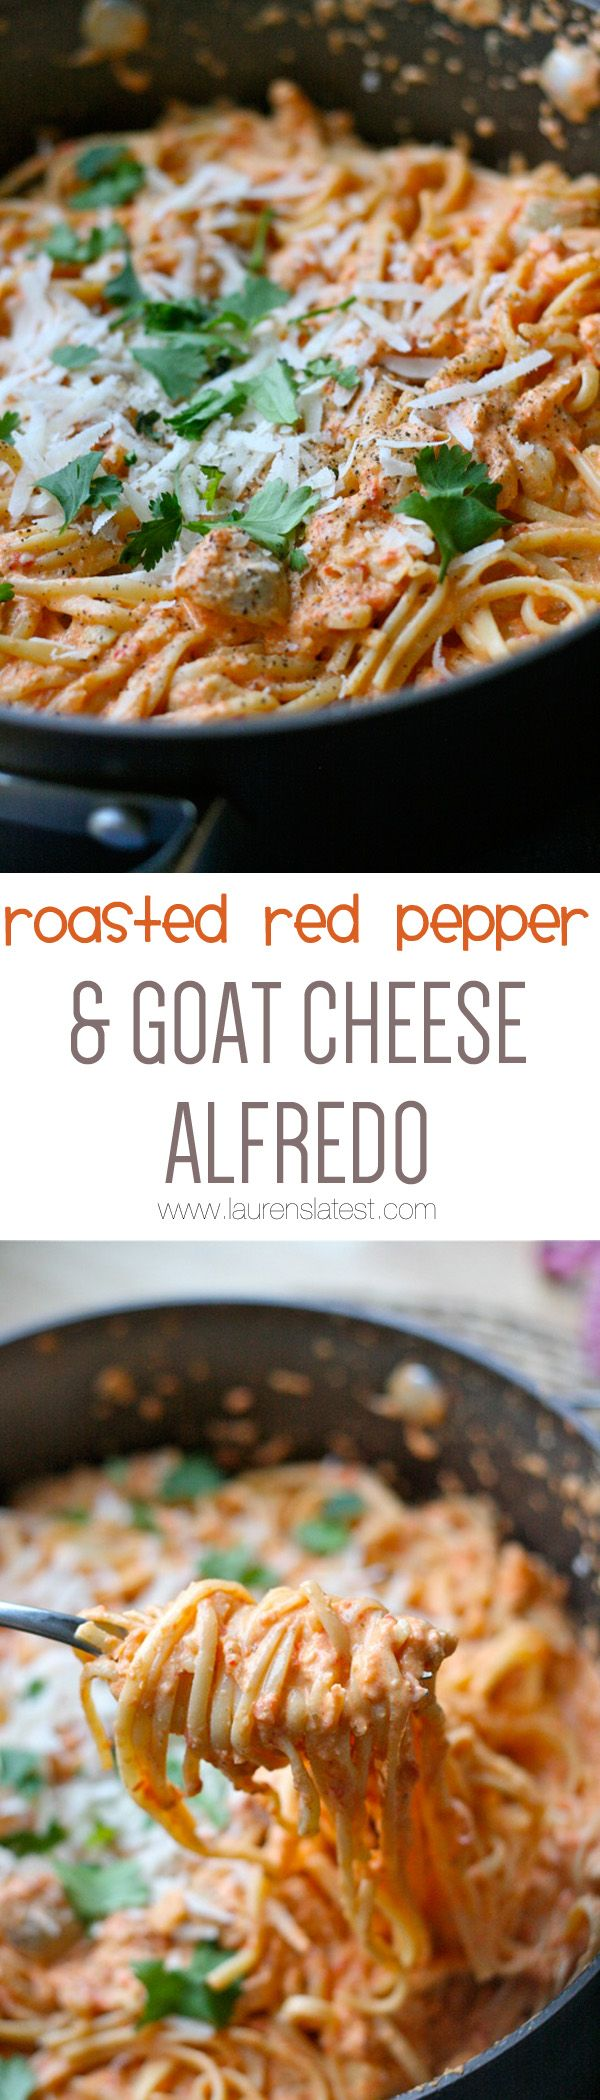 Roasted Red Pepper & Goat Cheese Alfredo | Recipe | Goat cheese, Red ...